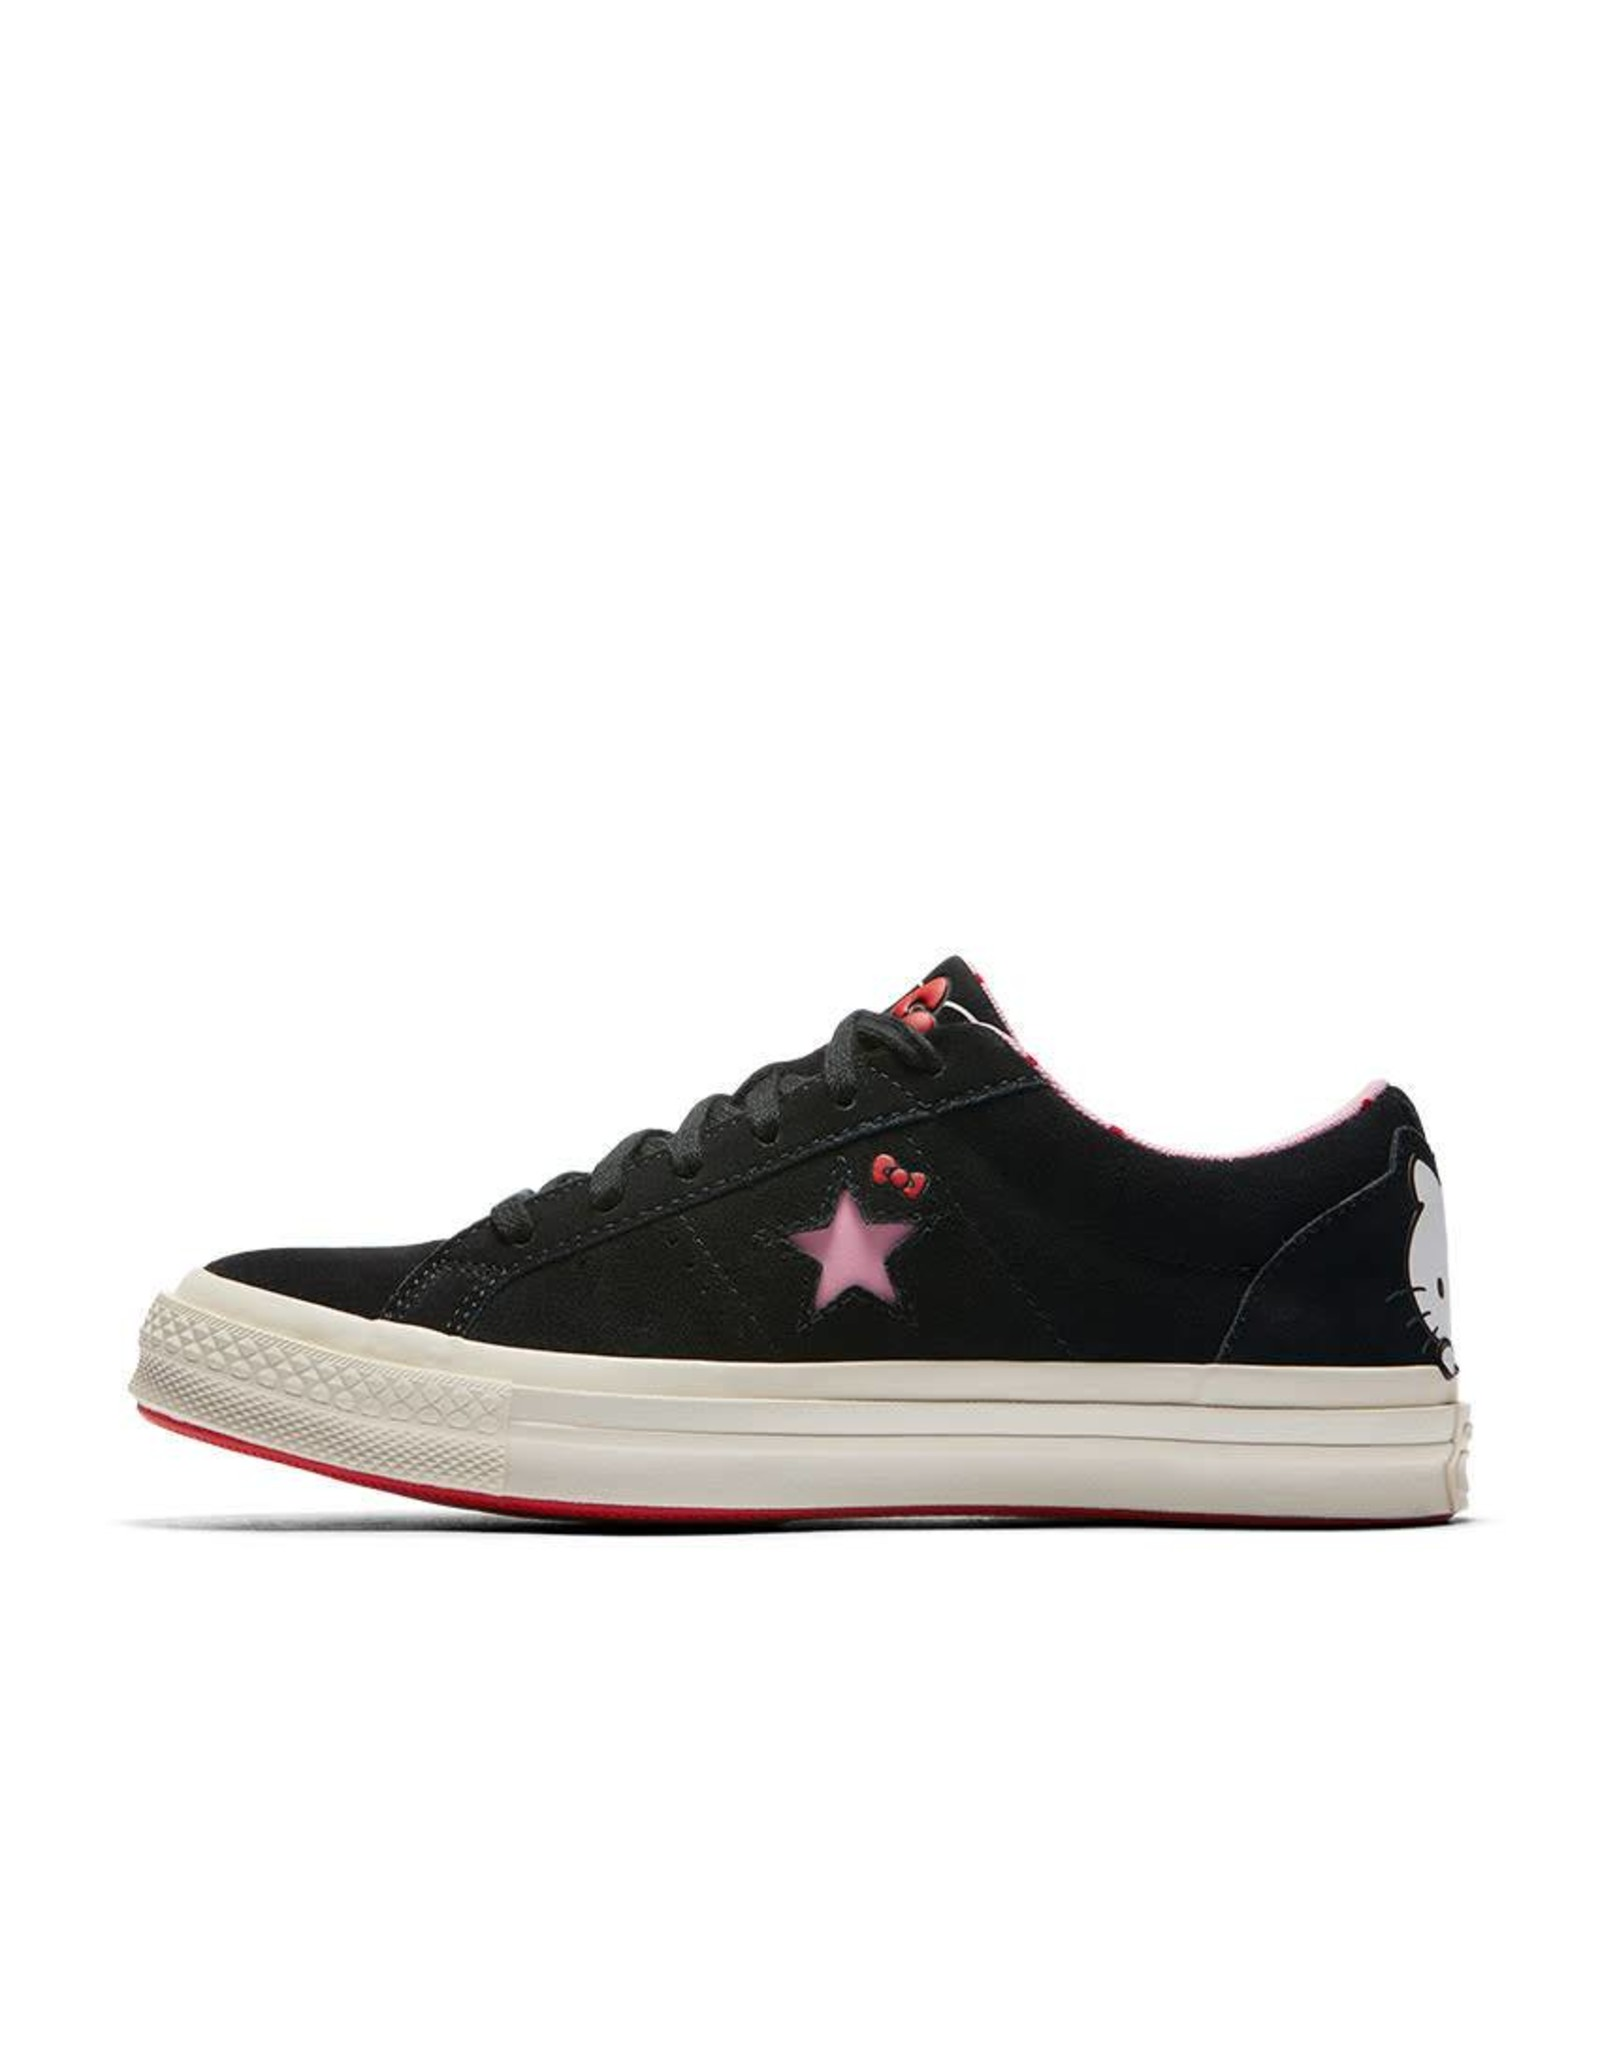 Size W Converse Hello Kitty One Star Ox Prism Pink Sneakers 7.5 9.5 or M